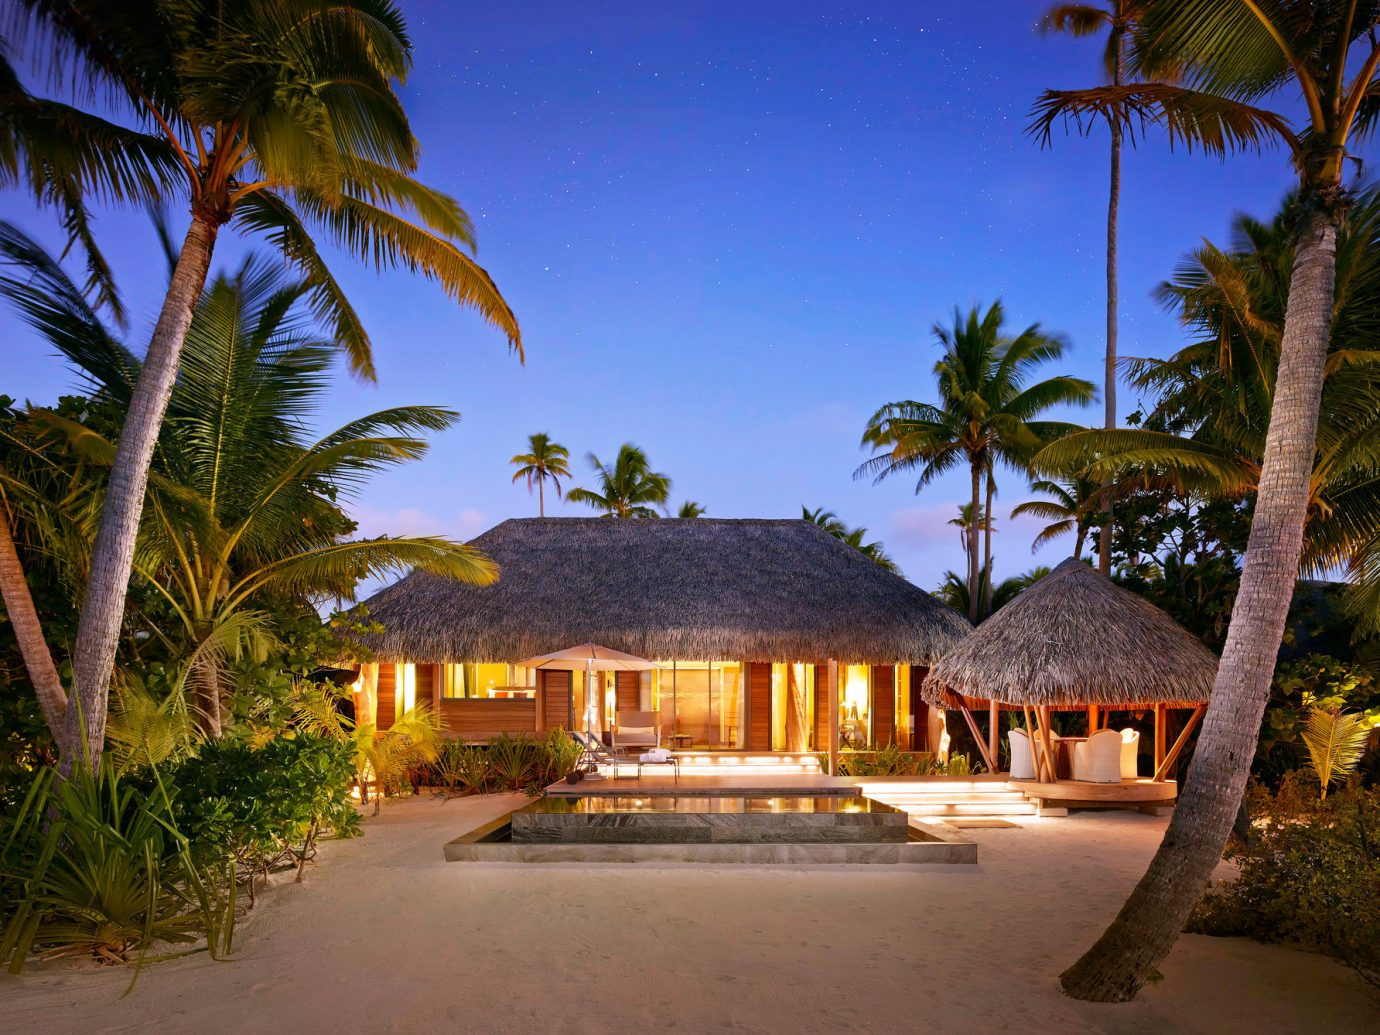 All-Inclusive Resorts ambient lighting Exterior Greenery Hotels huts isolation Luxury Travel night night lights palm trees Pool private private pool remote serene Tropical tree outdoor sky palm plant property Resort estate vacation house home arecales real estate Villa hacienda tropics caribbean mansion area lined